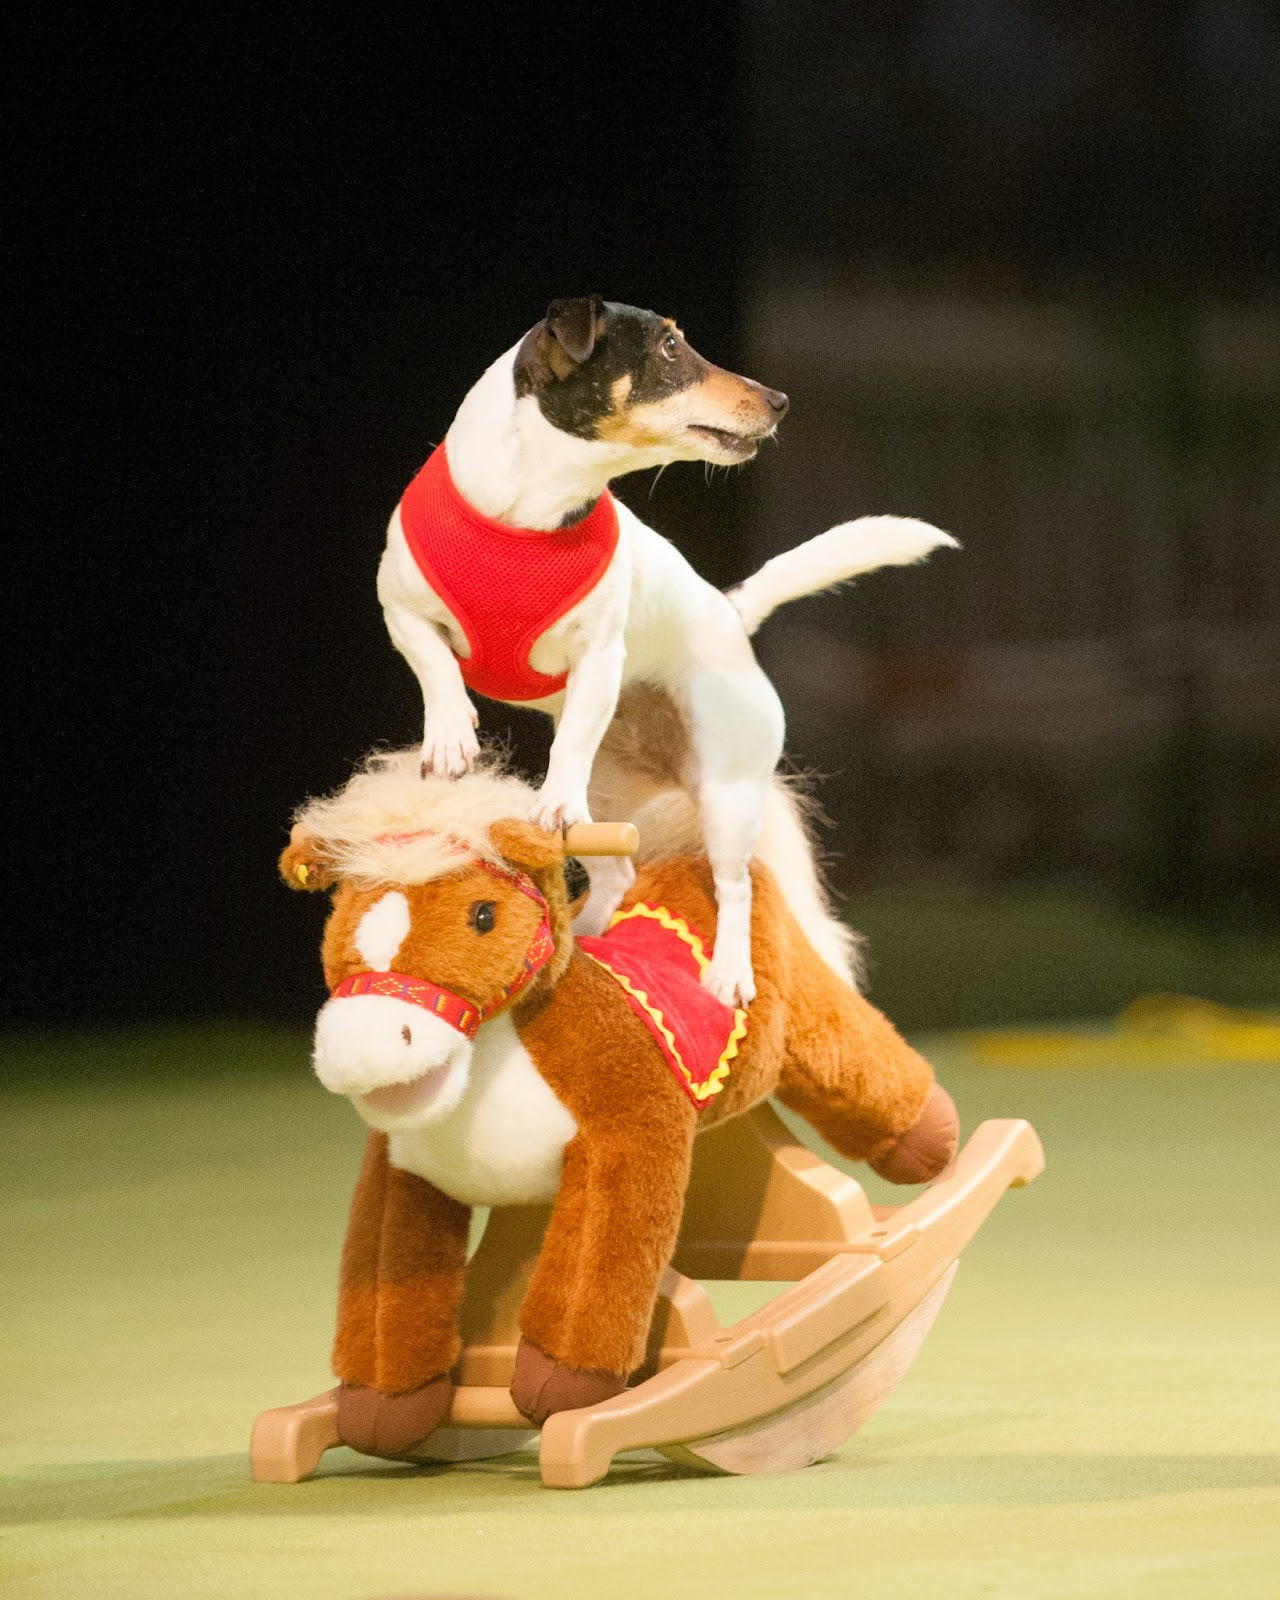 Talented dog on rocking horse